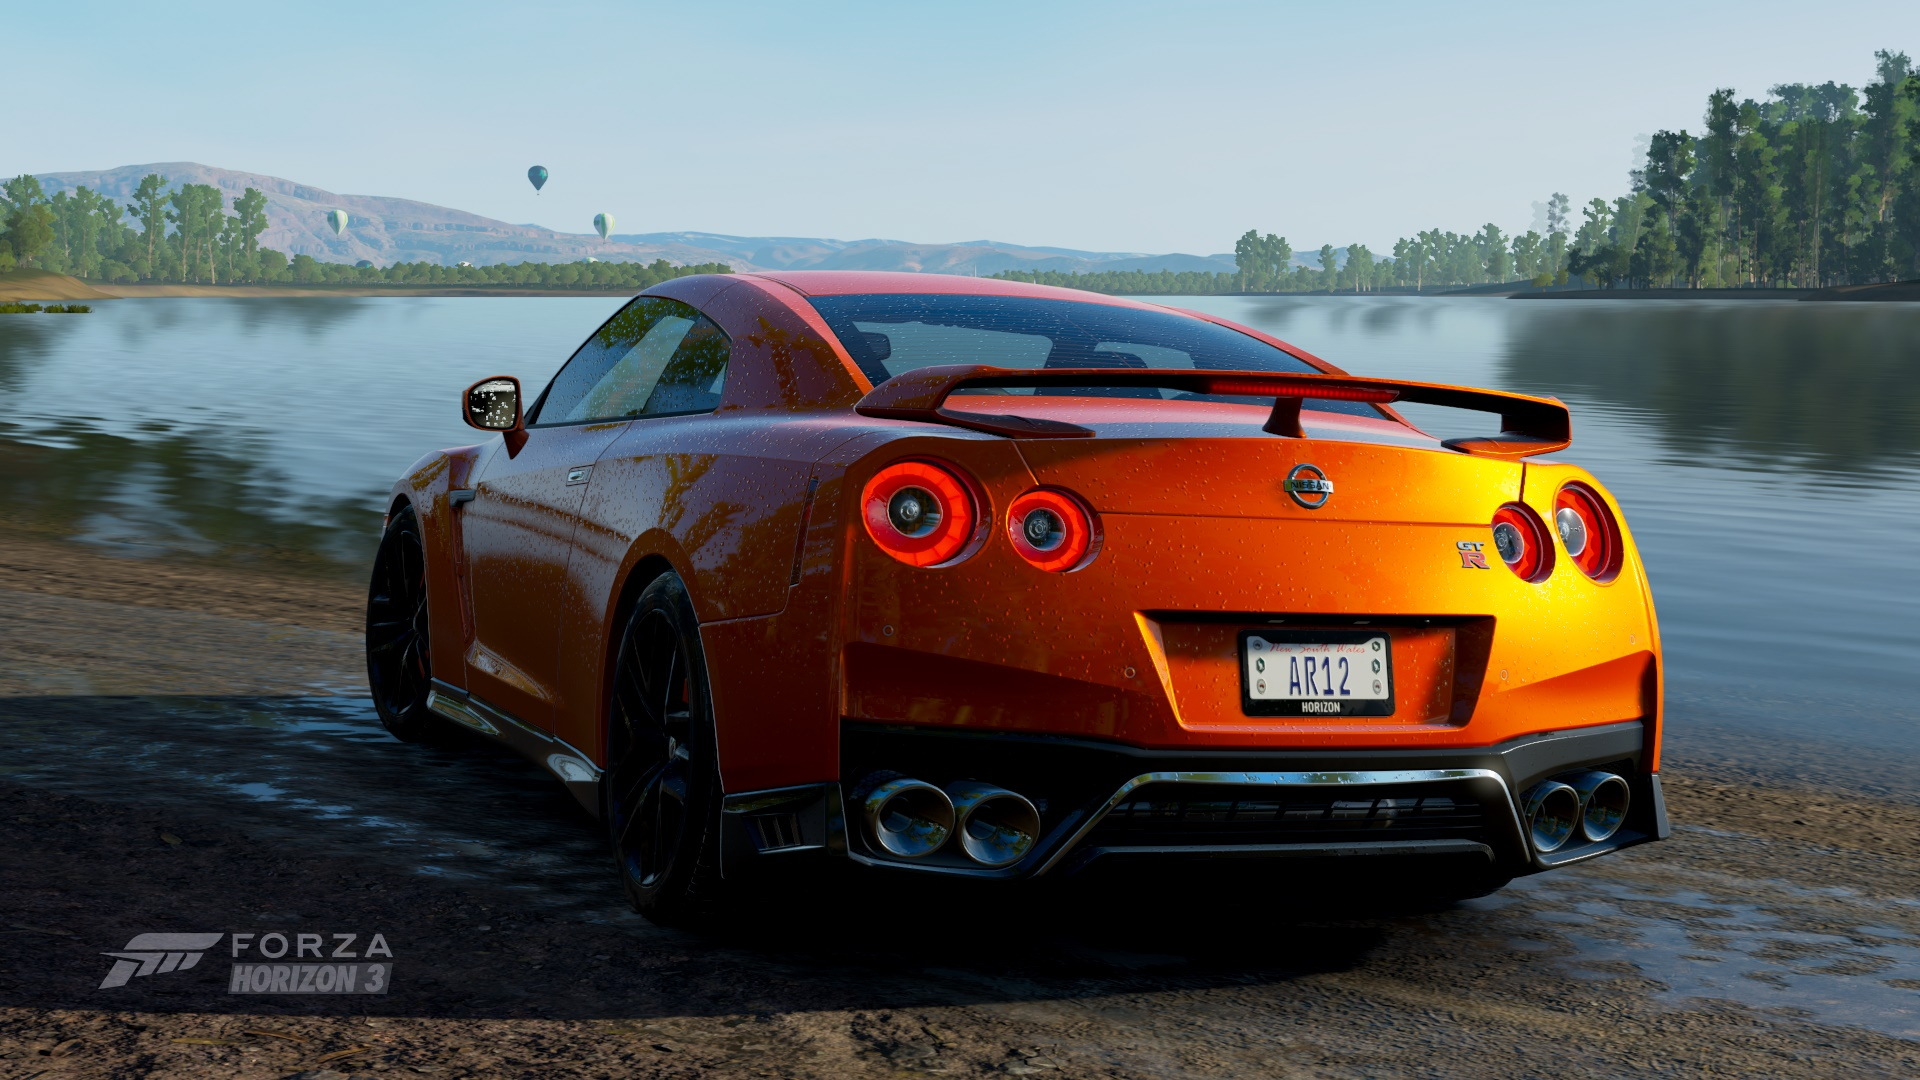 Best Car To Buy On Forza Horizon